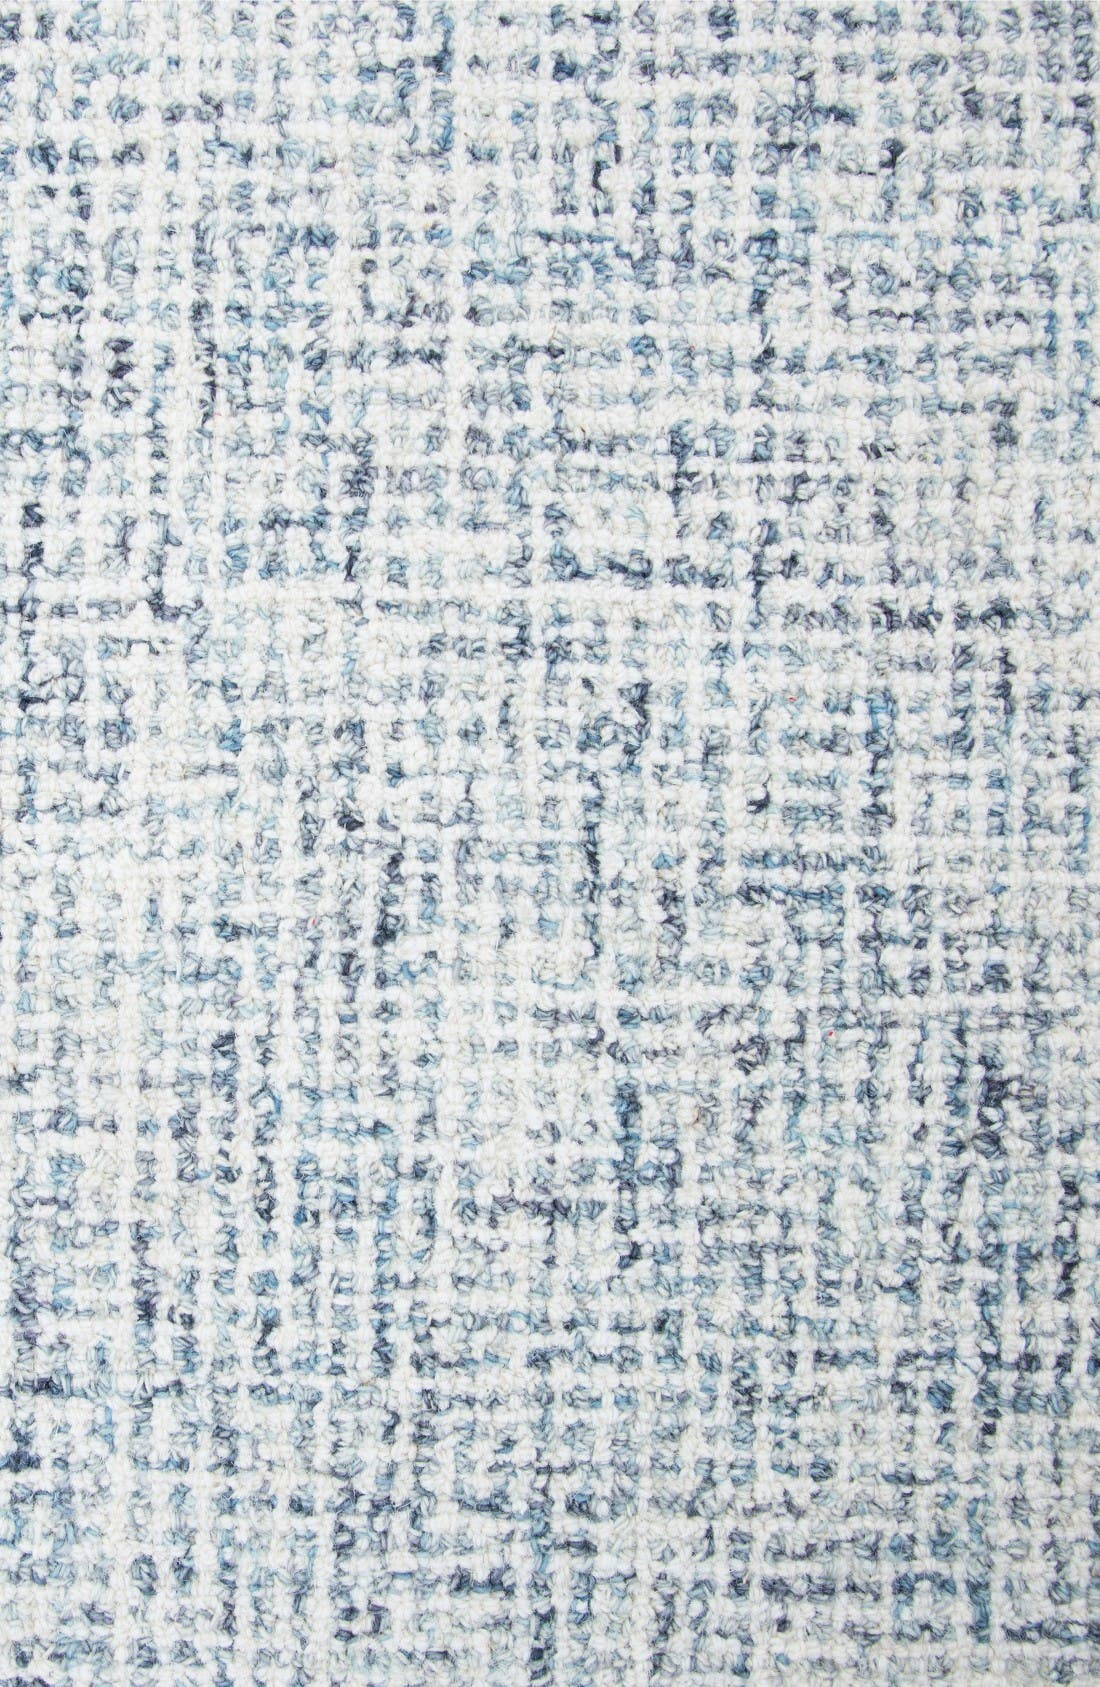 Bramble Hand Tufted Wool Area Rug,                             Alternate thumbnail 5, color,                             Blue